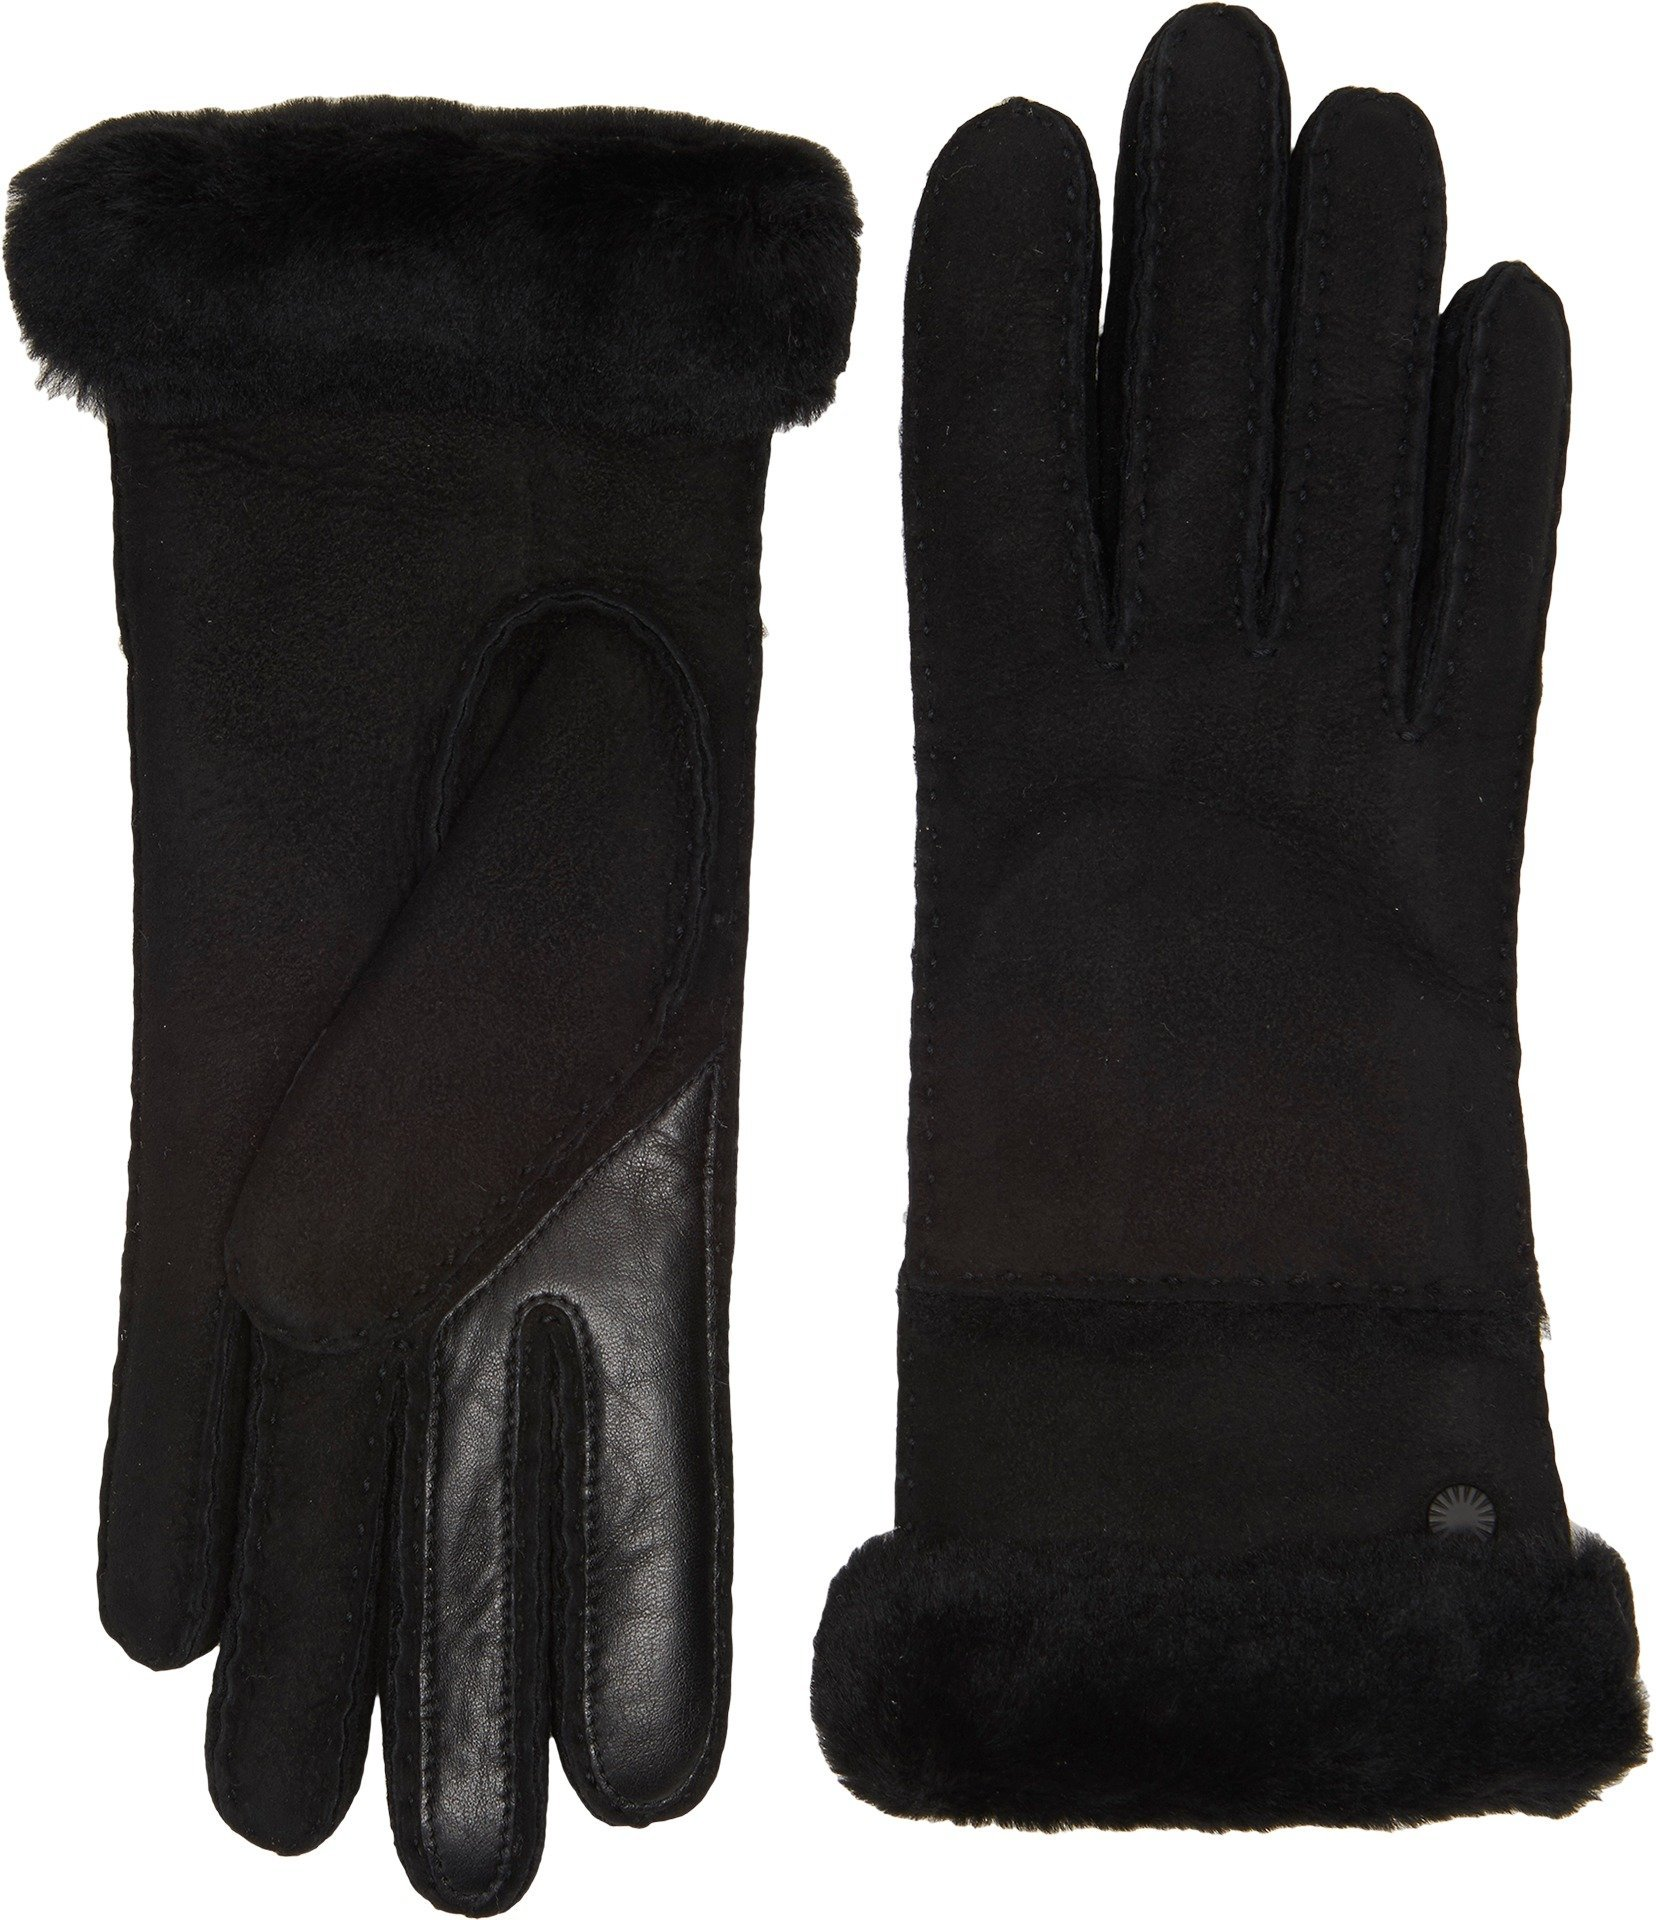 UGG Women's Exposed Waterproof Sheepskin Tech Gloves with Slim Pile Black MD